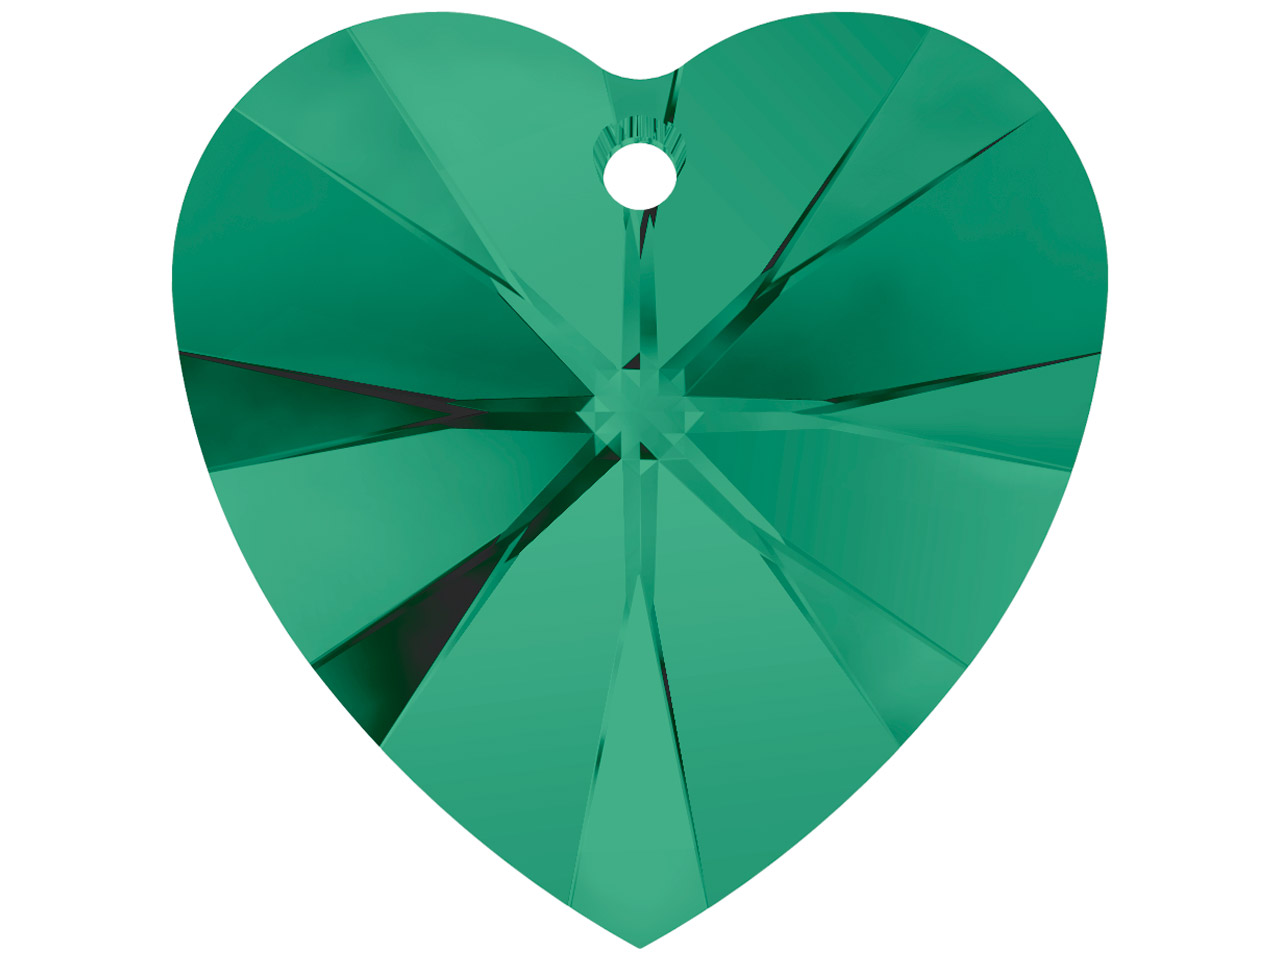 Swarovski Crystal Pack of 2 Heart, 6228, 10.3x10mm Emerald